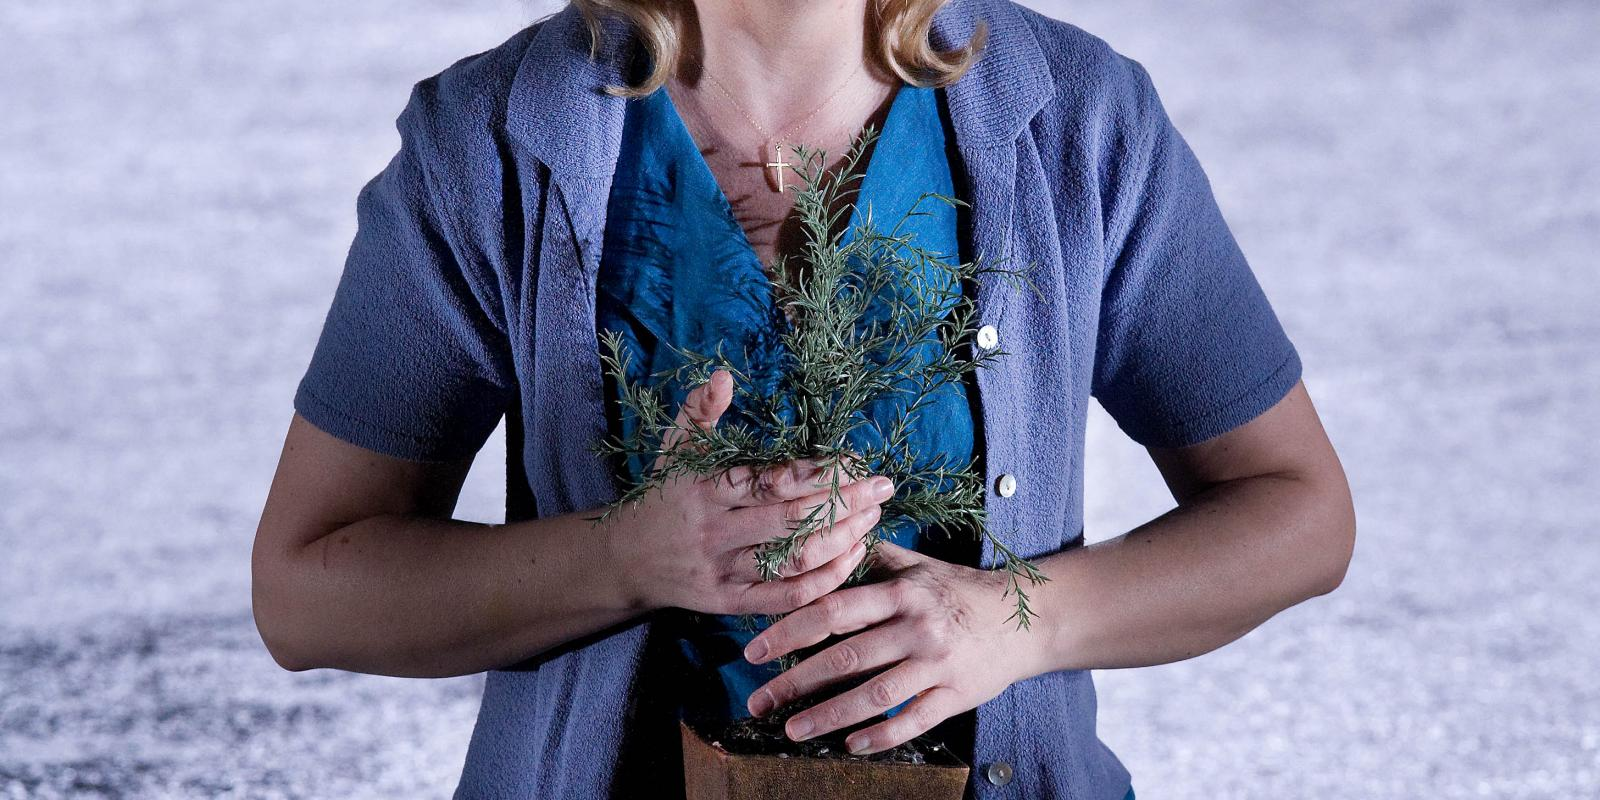 Woman in blue outfit holding a houseplant in ENO's Jenufa